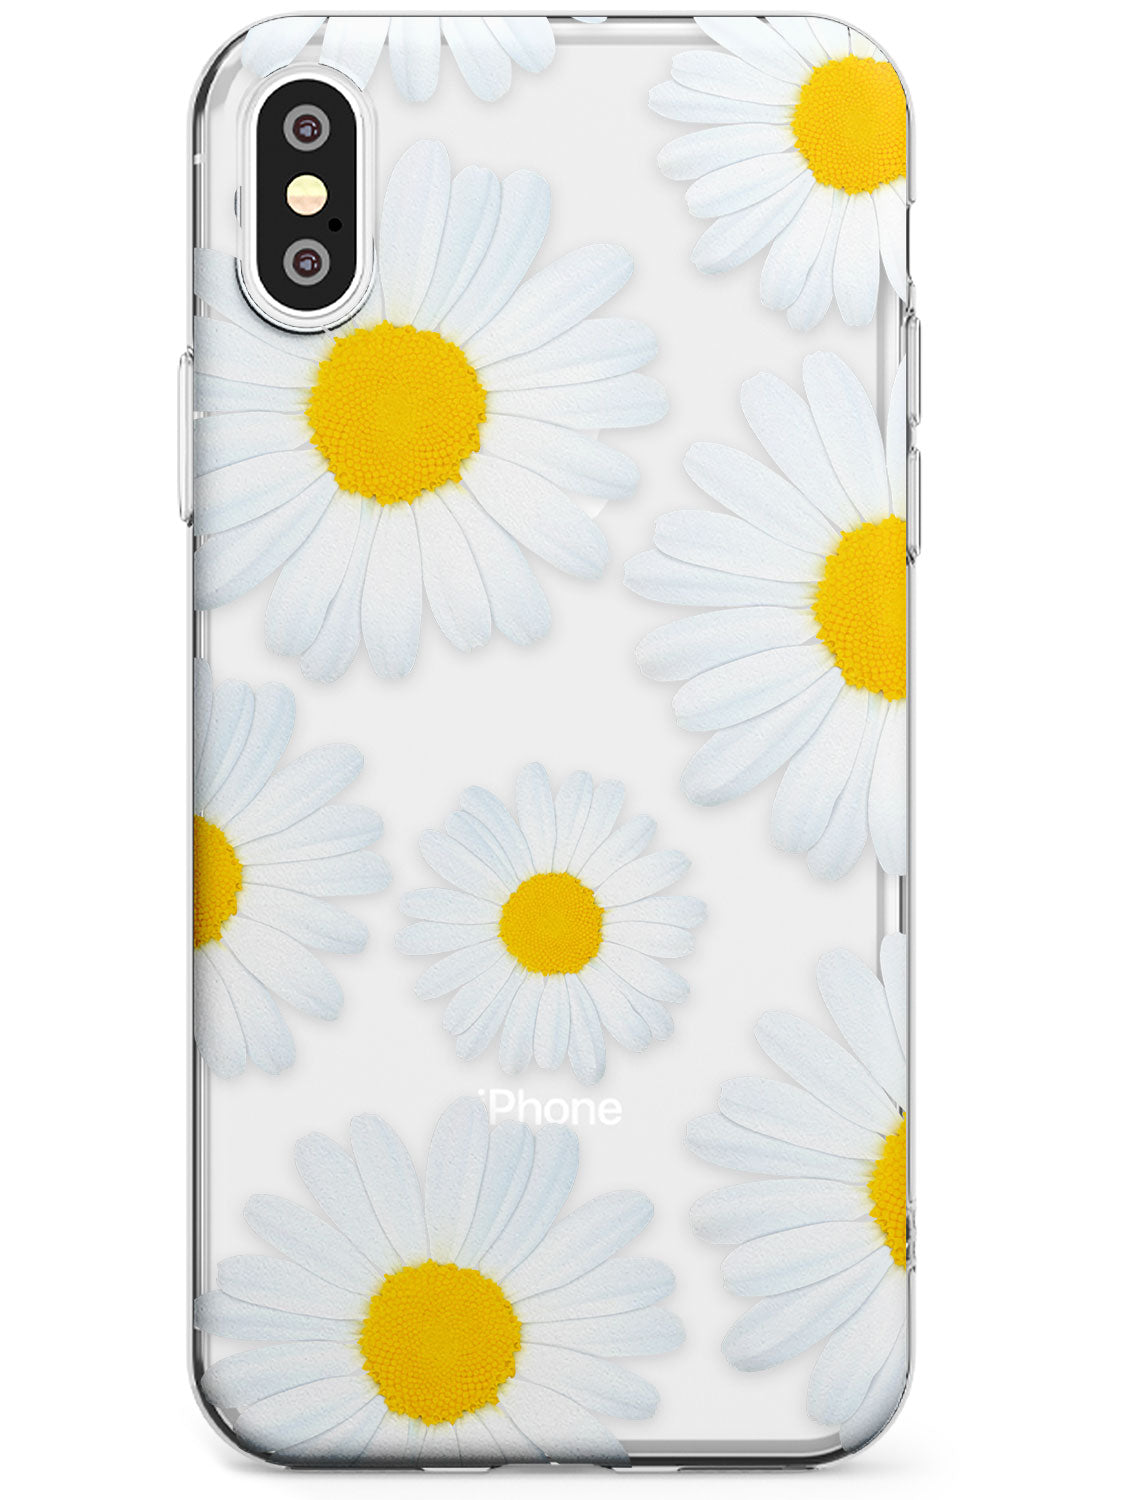 Summer Daisy iPhone Case by Case Warehouse ®